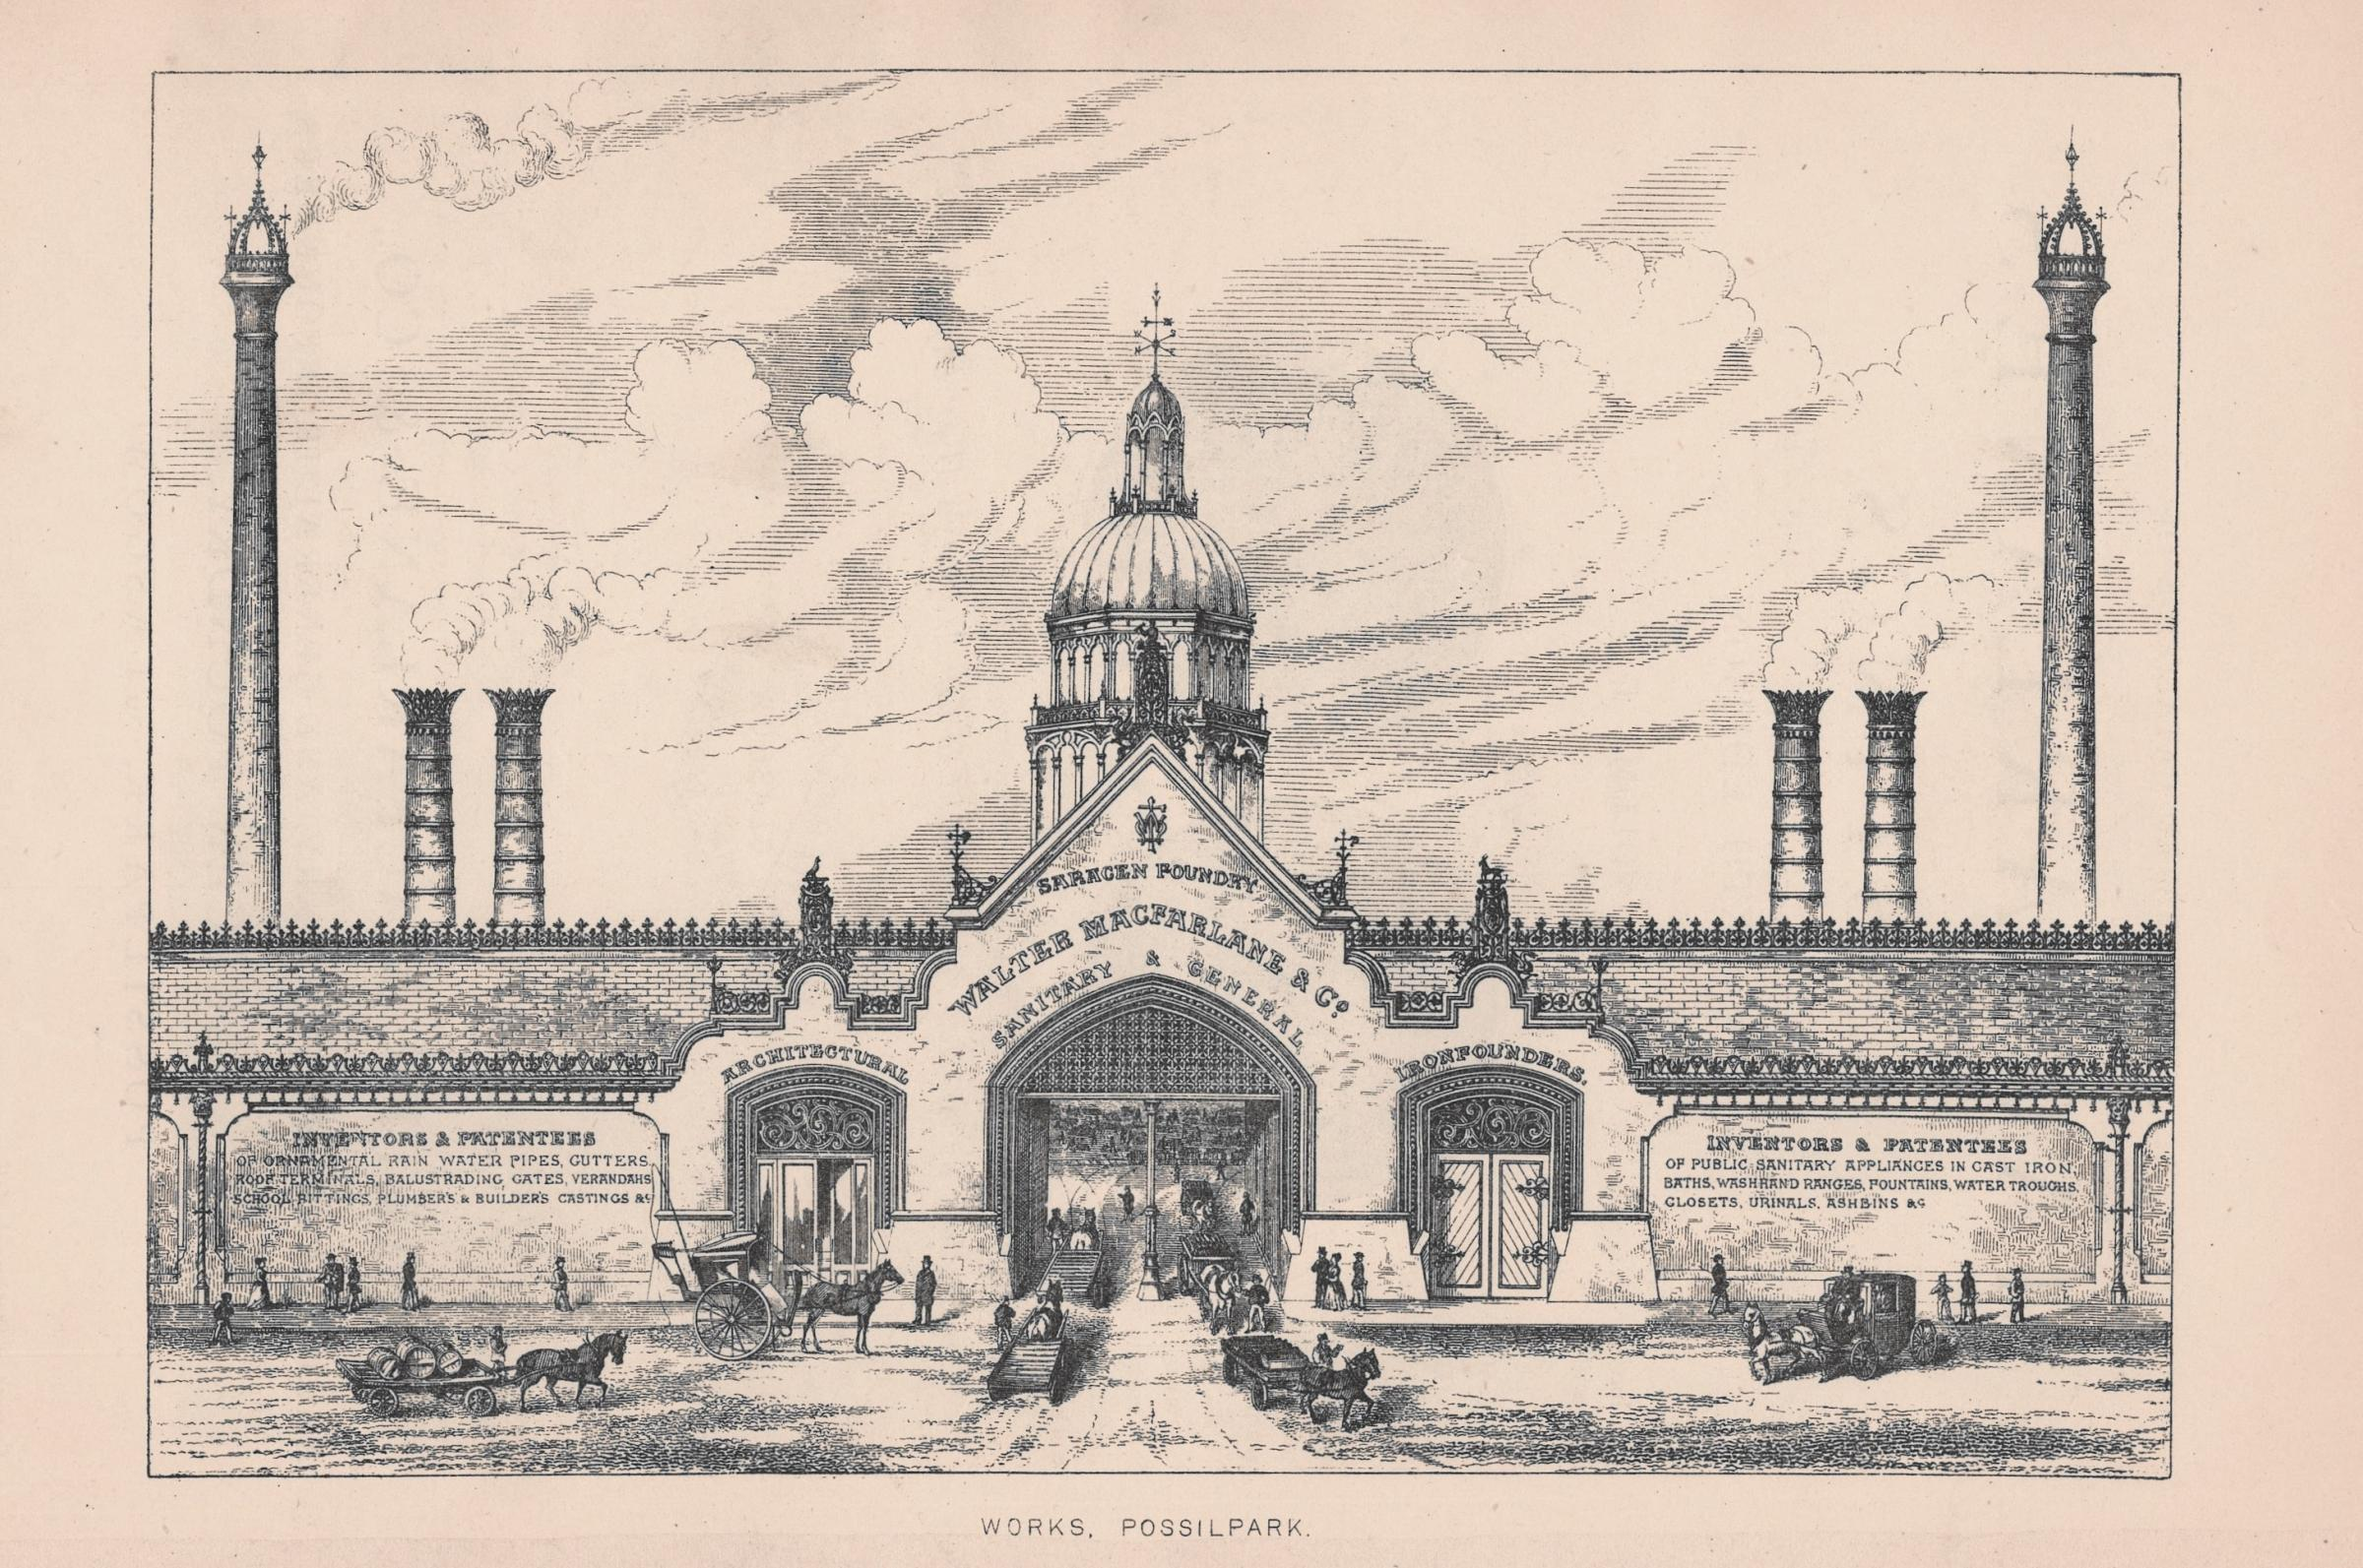 From fountains to urinals - the famous Glasgow foundry that went global